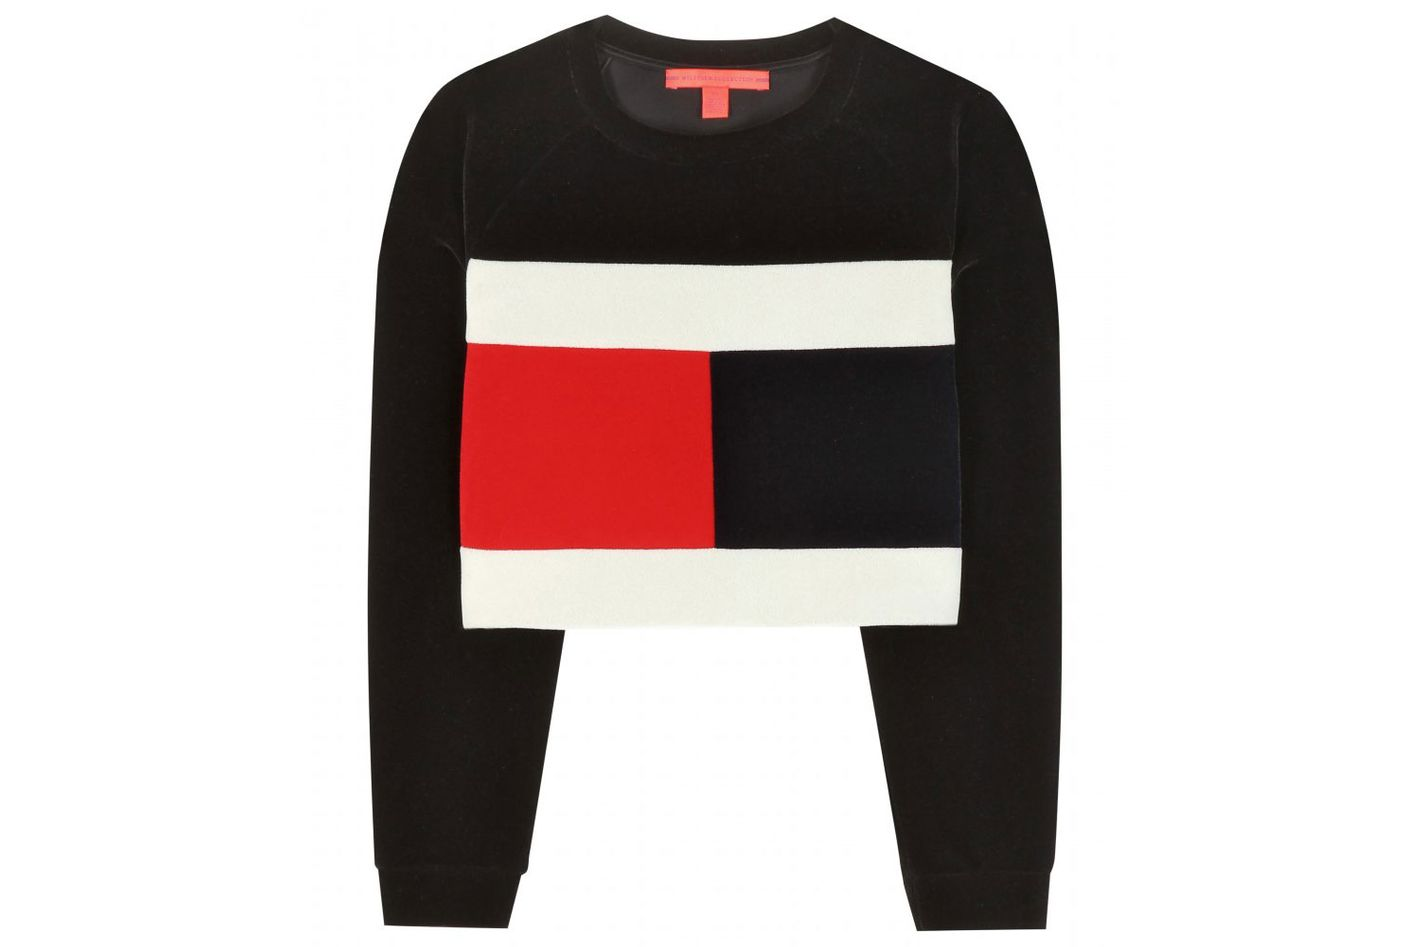 ec416f106bd Products   Thrift Heaven. Browse all products from Thrift Heaven. ... Tommy  Hilfiger Hockey Jersey ...